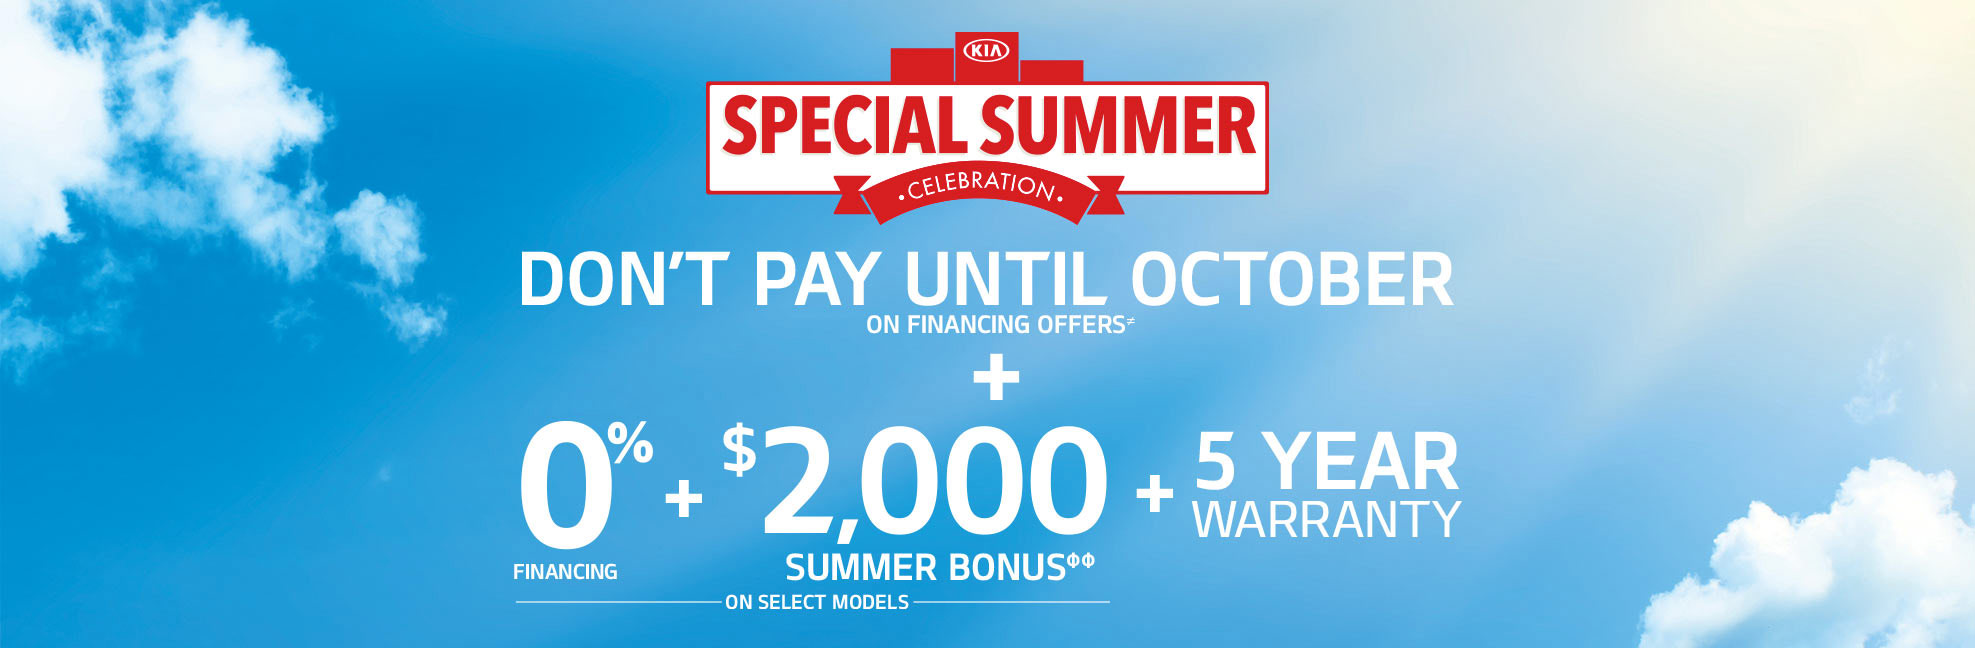 Special Summer Celebration - Don't Pay Until October Scarboro Kia